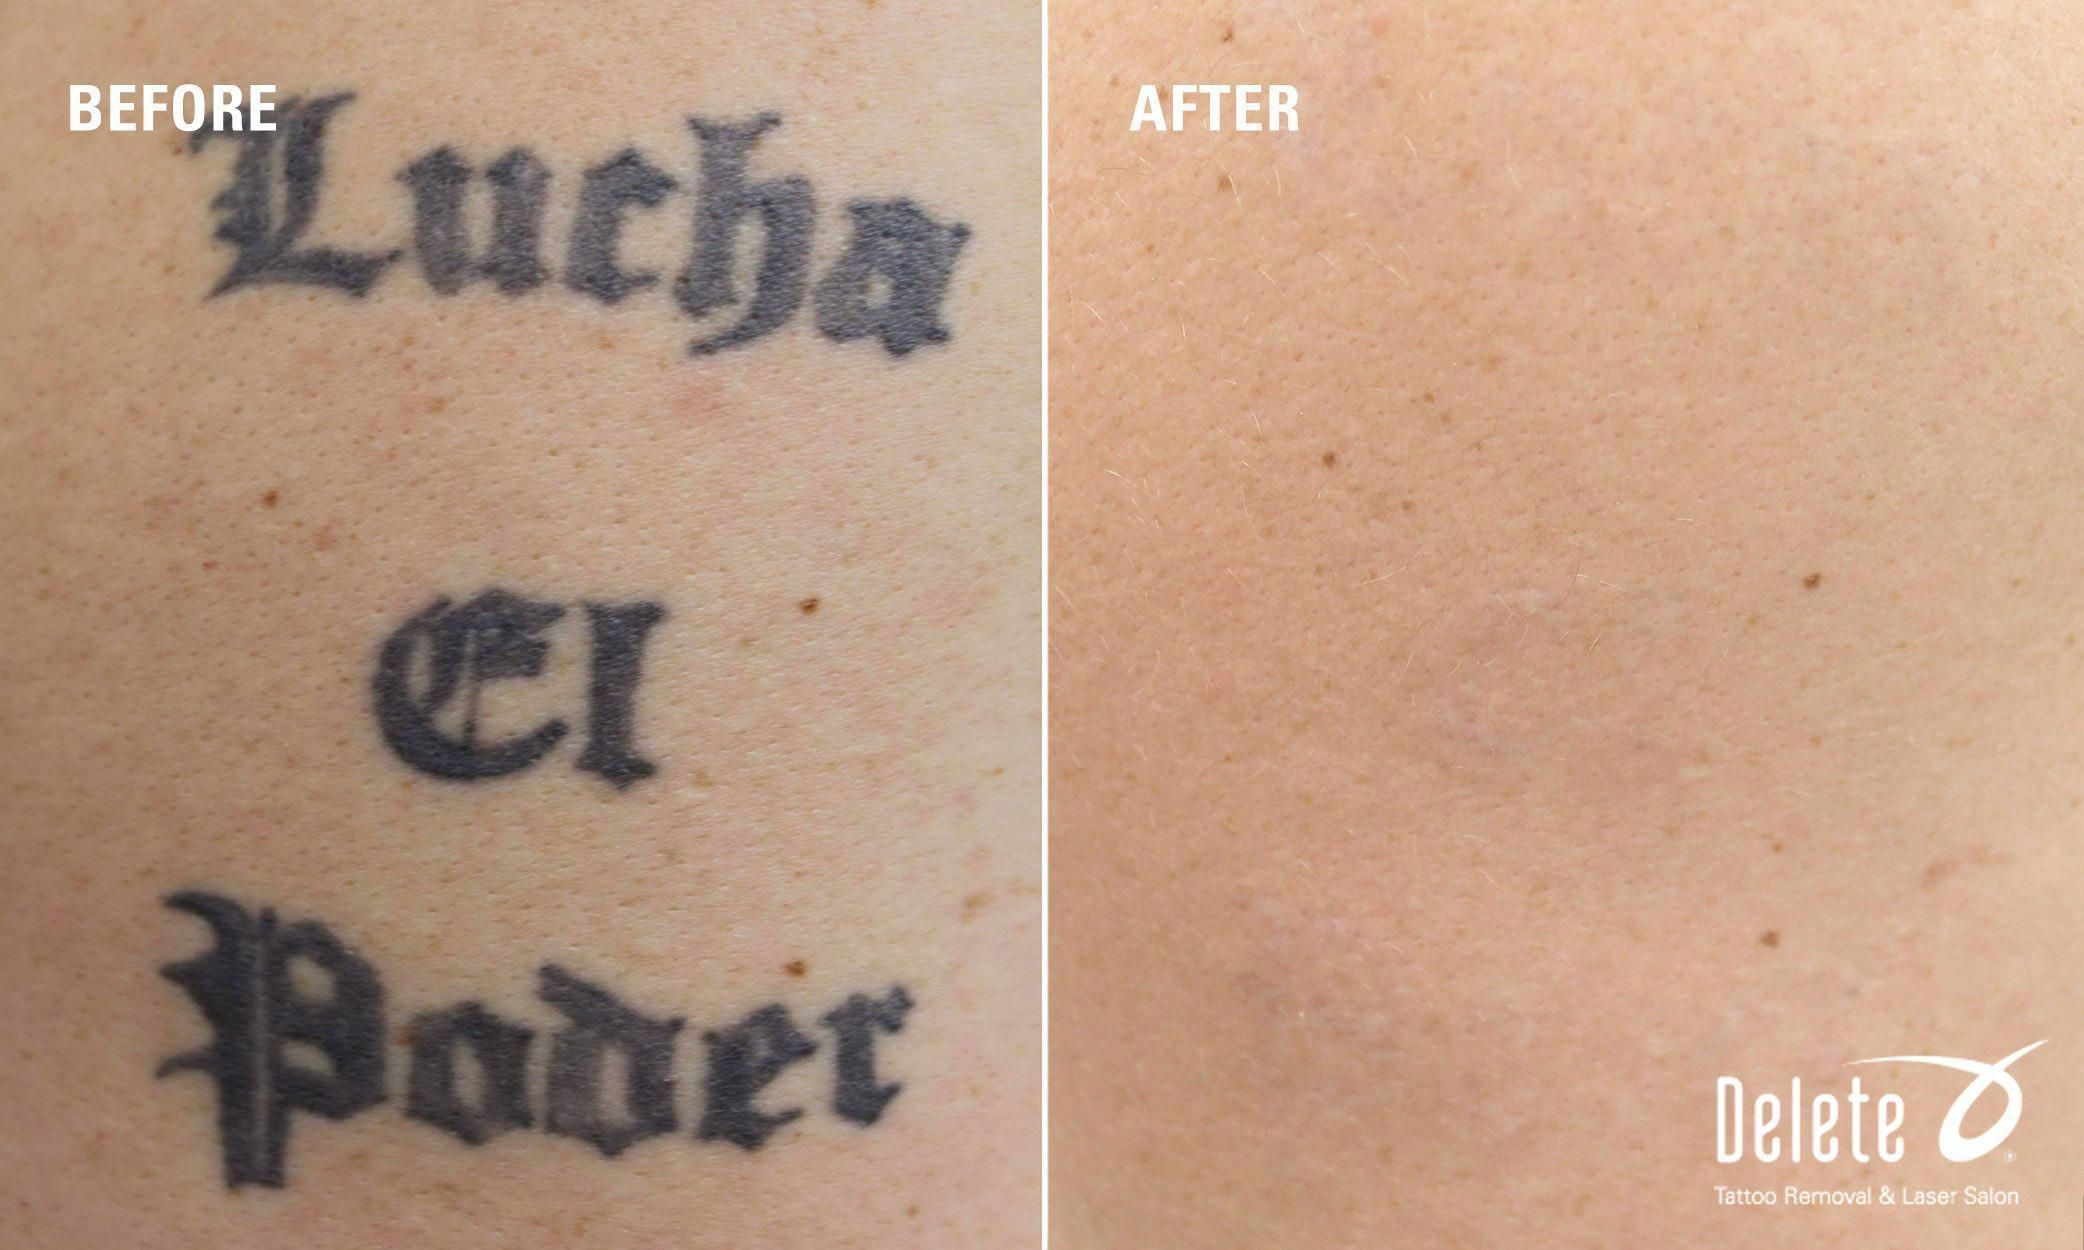 Happy Before After Monday Here Is Another Powerful Result Achieved At Delete With Our Picoway Tatto Tattoo Removal Results Tattoo Removal Cost Laser Tattoo